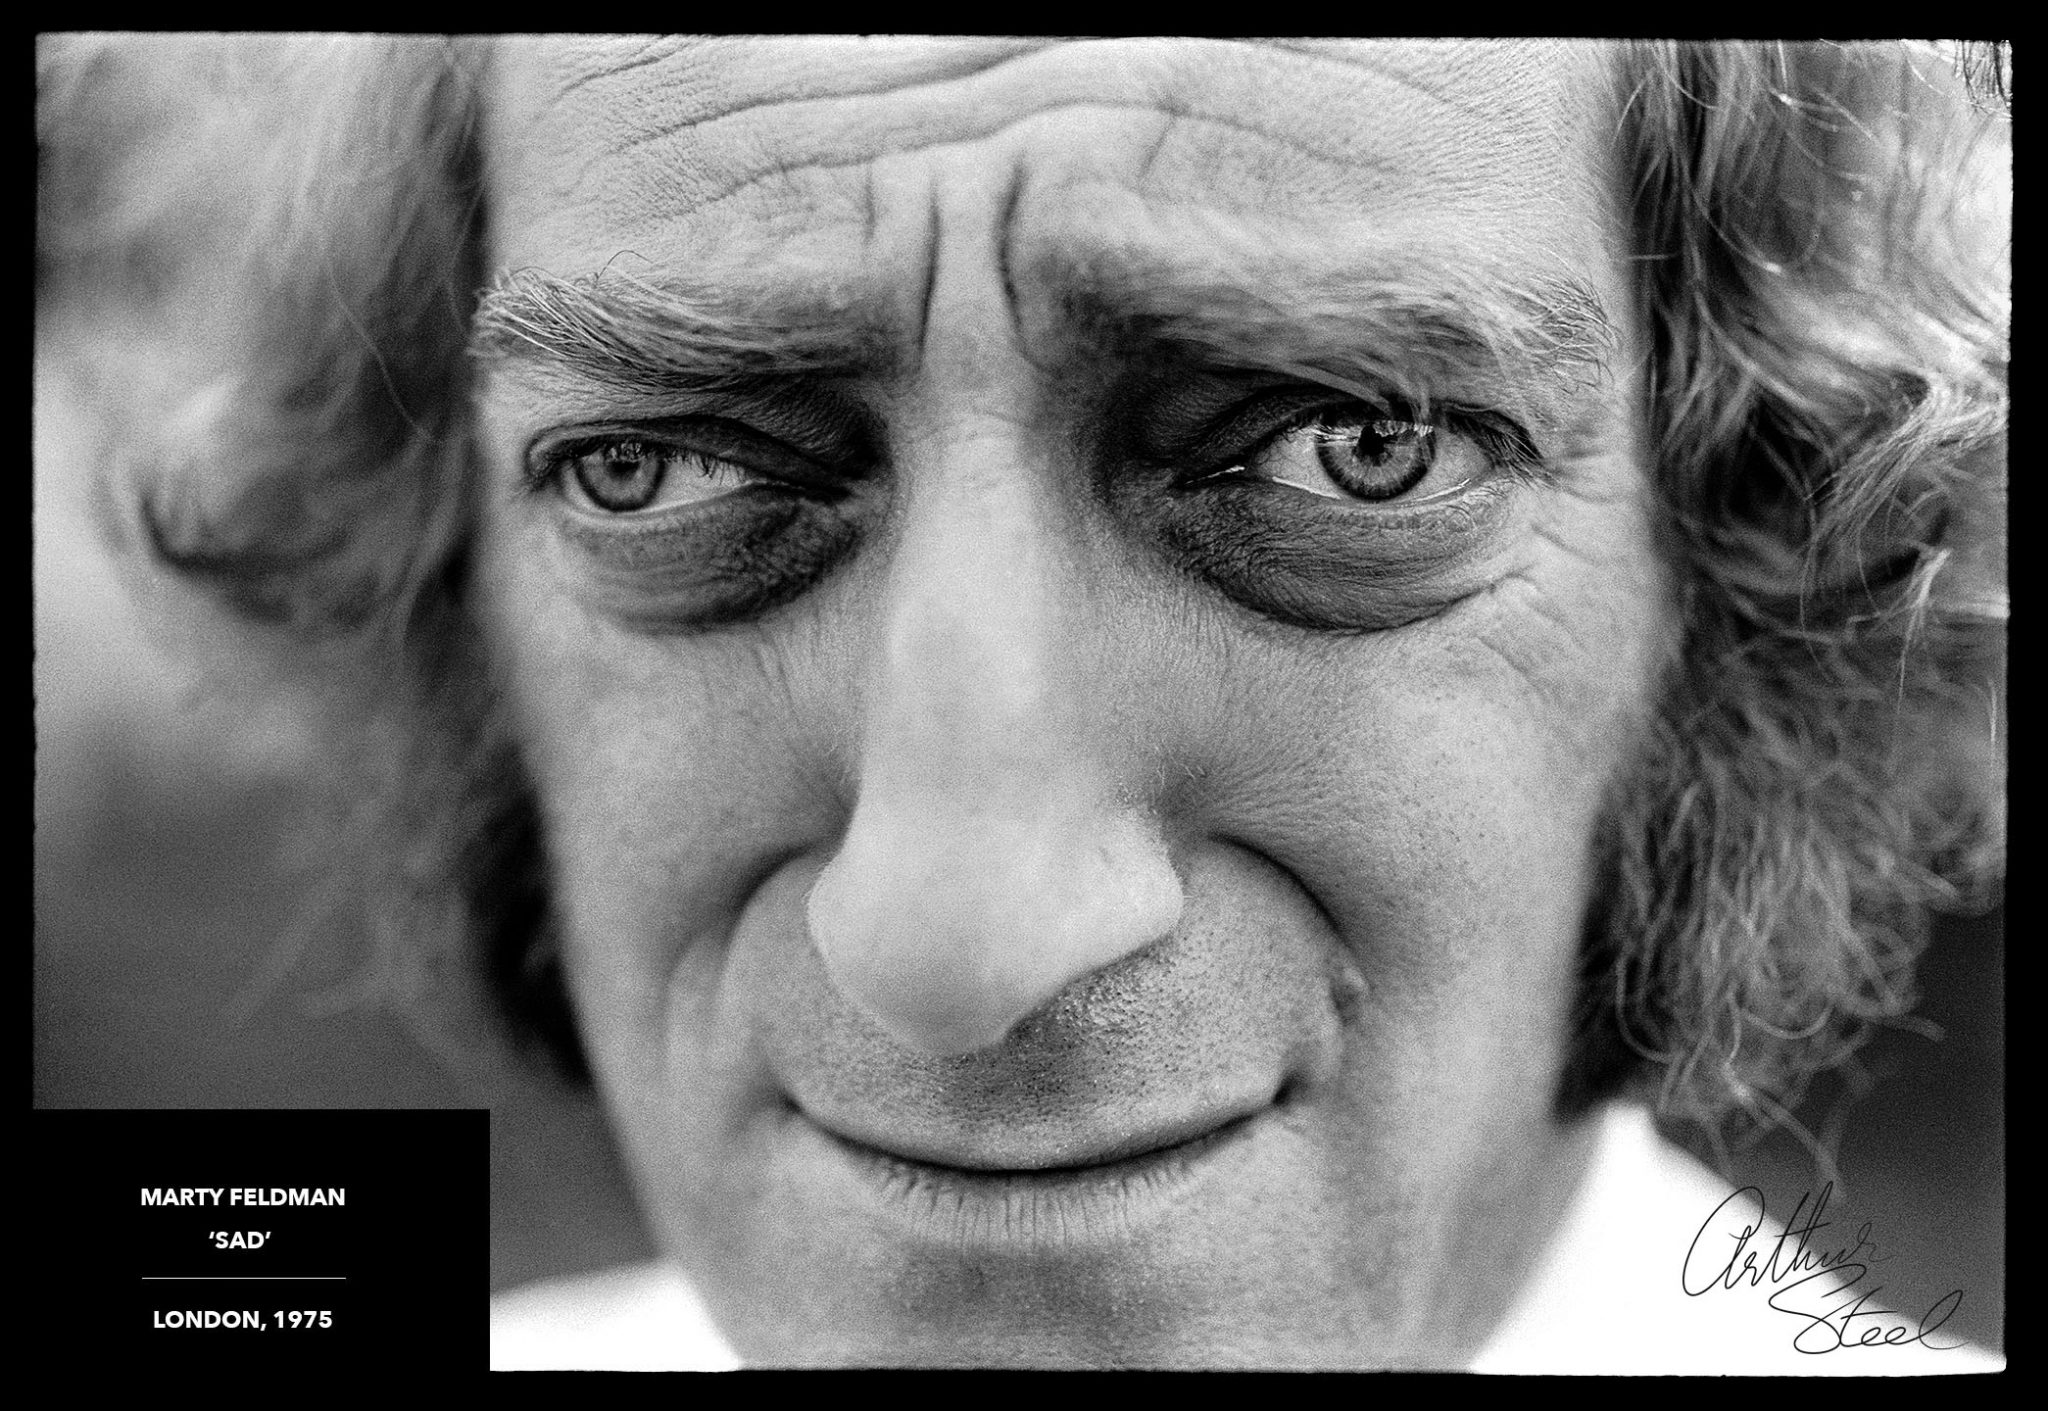 marty feldman sad rare photograph arthur steel